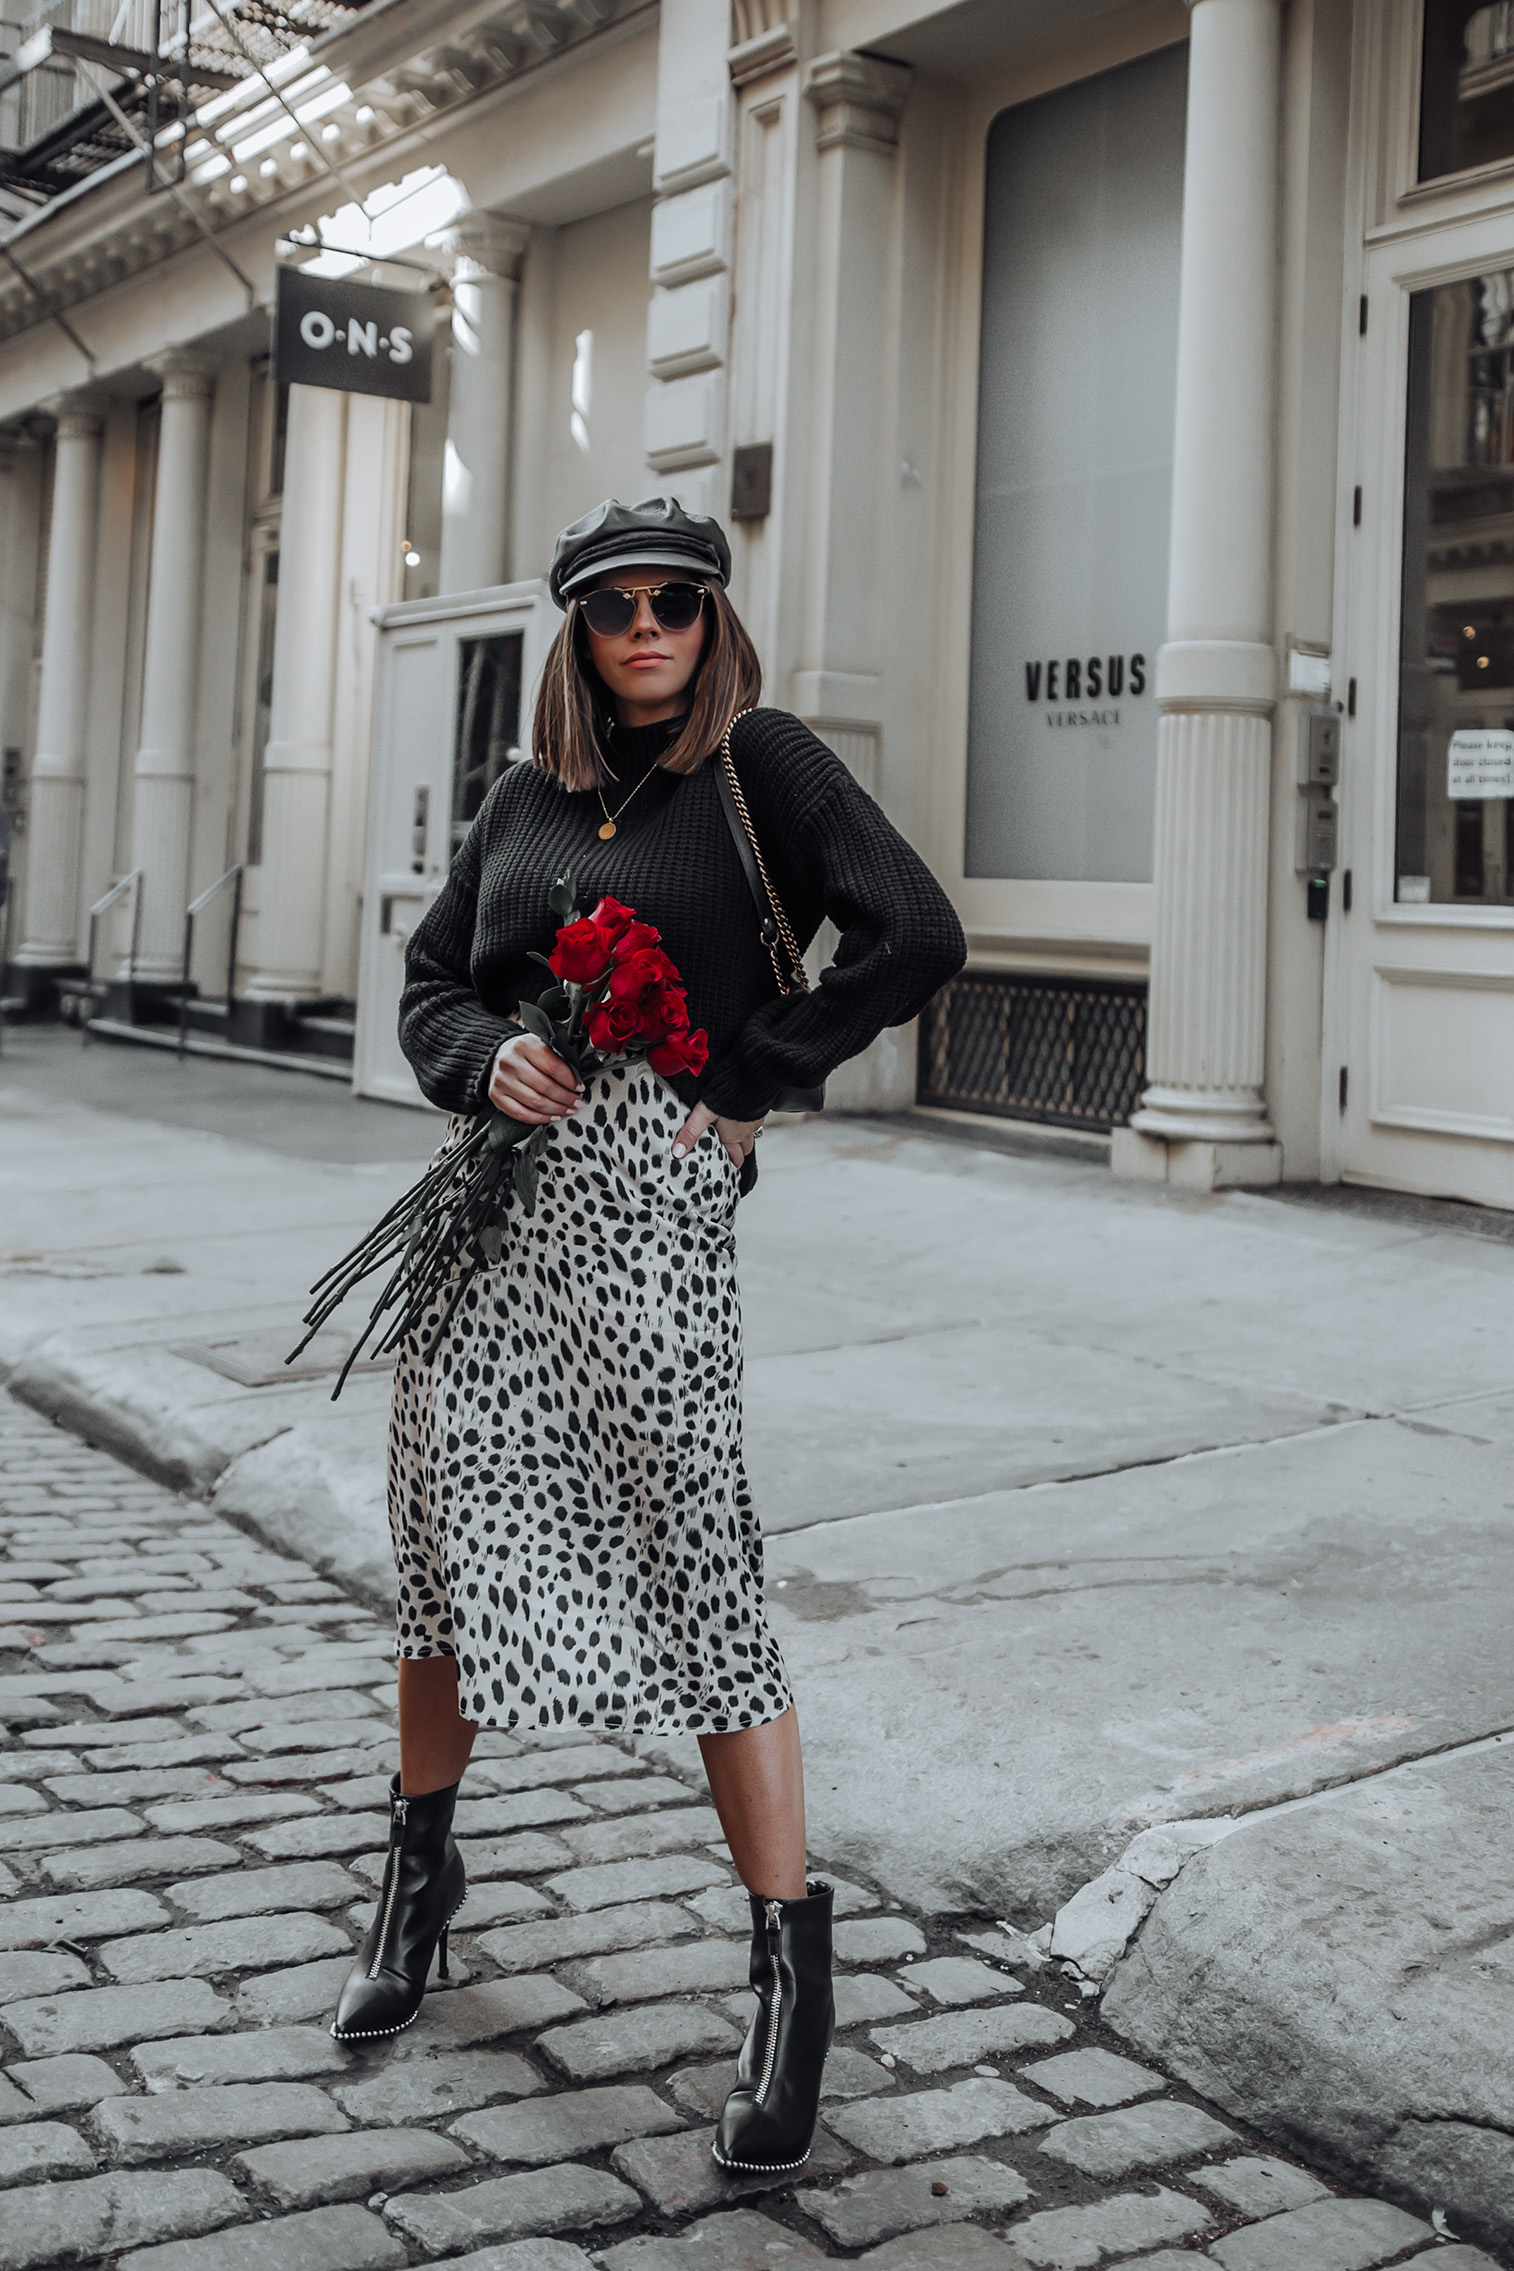 Cheetah spot skirt | Booties | Gucci Bag | Sweater Happy hump day babes! I shot this look on Valentine's Day last week and I'm so excited to finally share it here on the blog! This spot print skirt is seriously so flattering and flirty I felt it was the perfect look for Valentines. We didn't really do anything to celebrate since we have a newborn at home, but it's still fun to get dressed up!